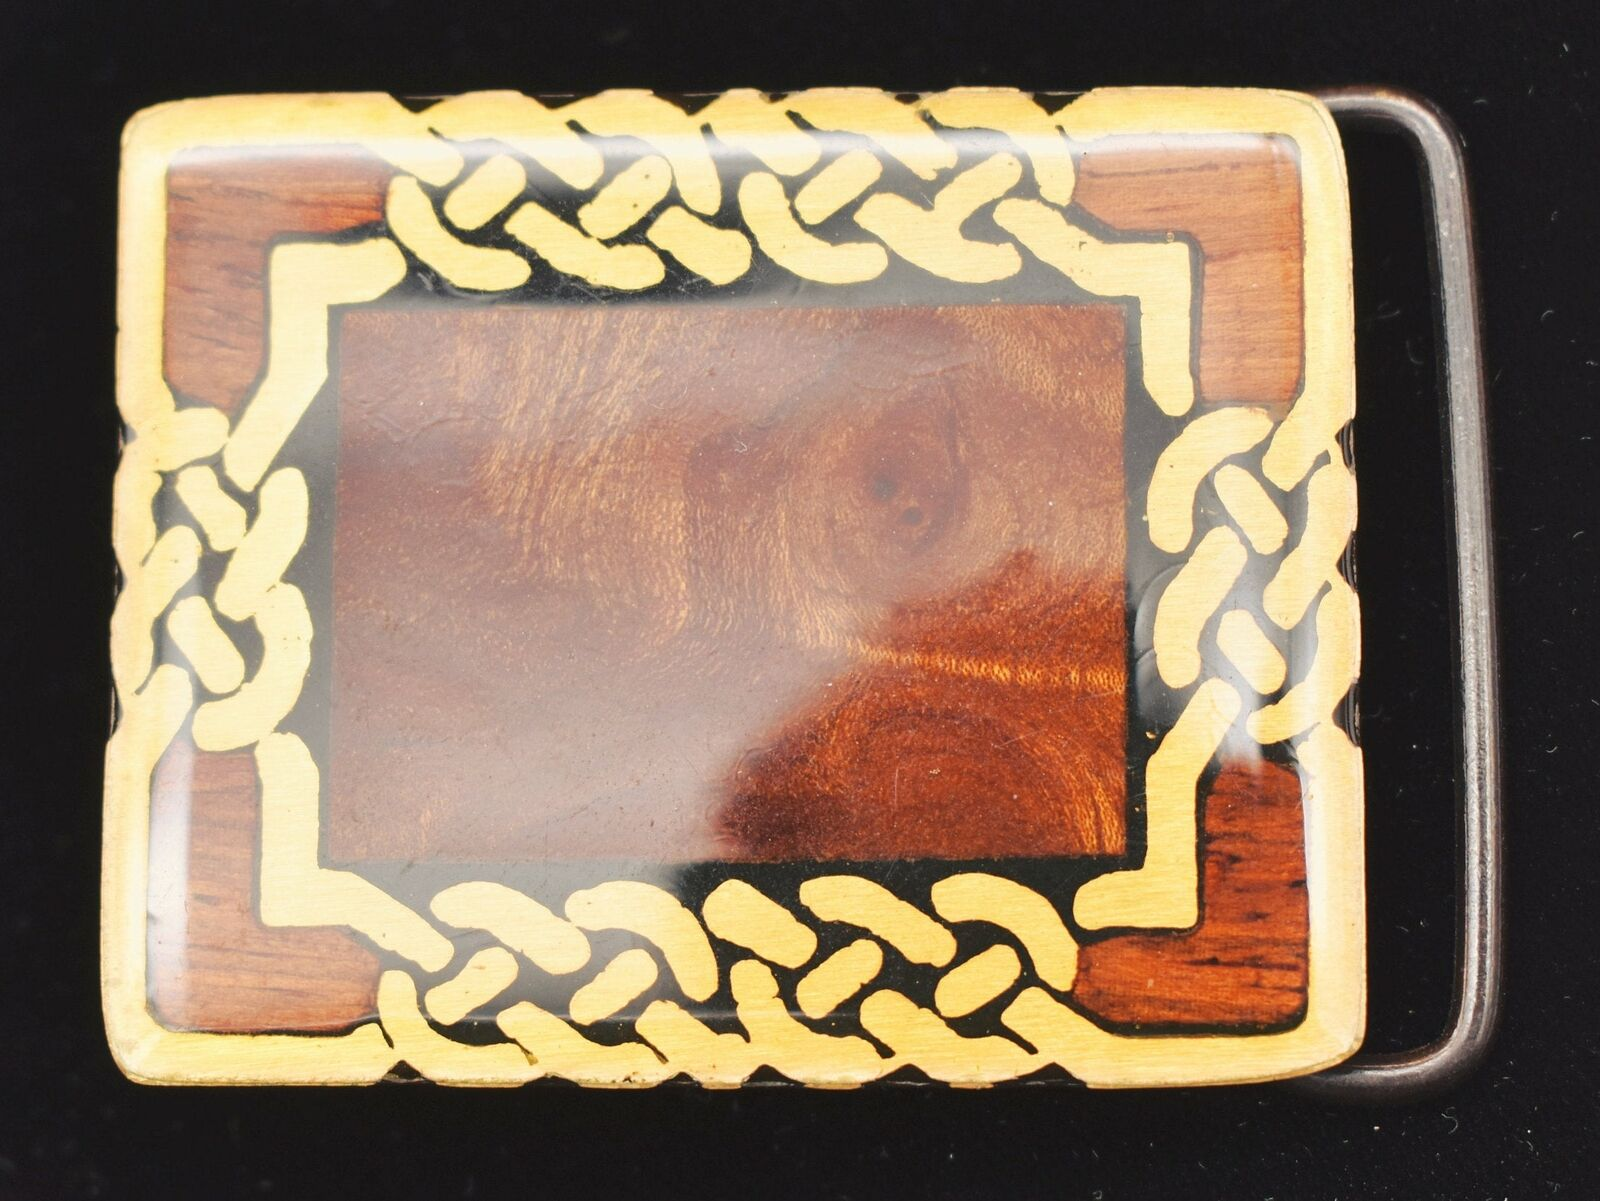 Burly Wood Inlay Celtic Knots Harmony Metals Solid Brass Vintage Belt Buckle